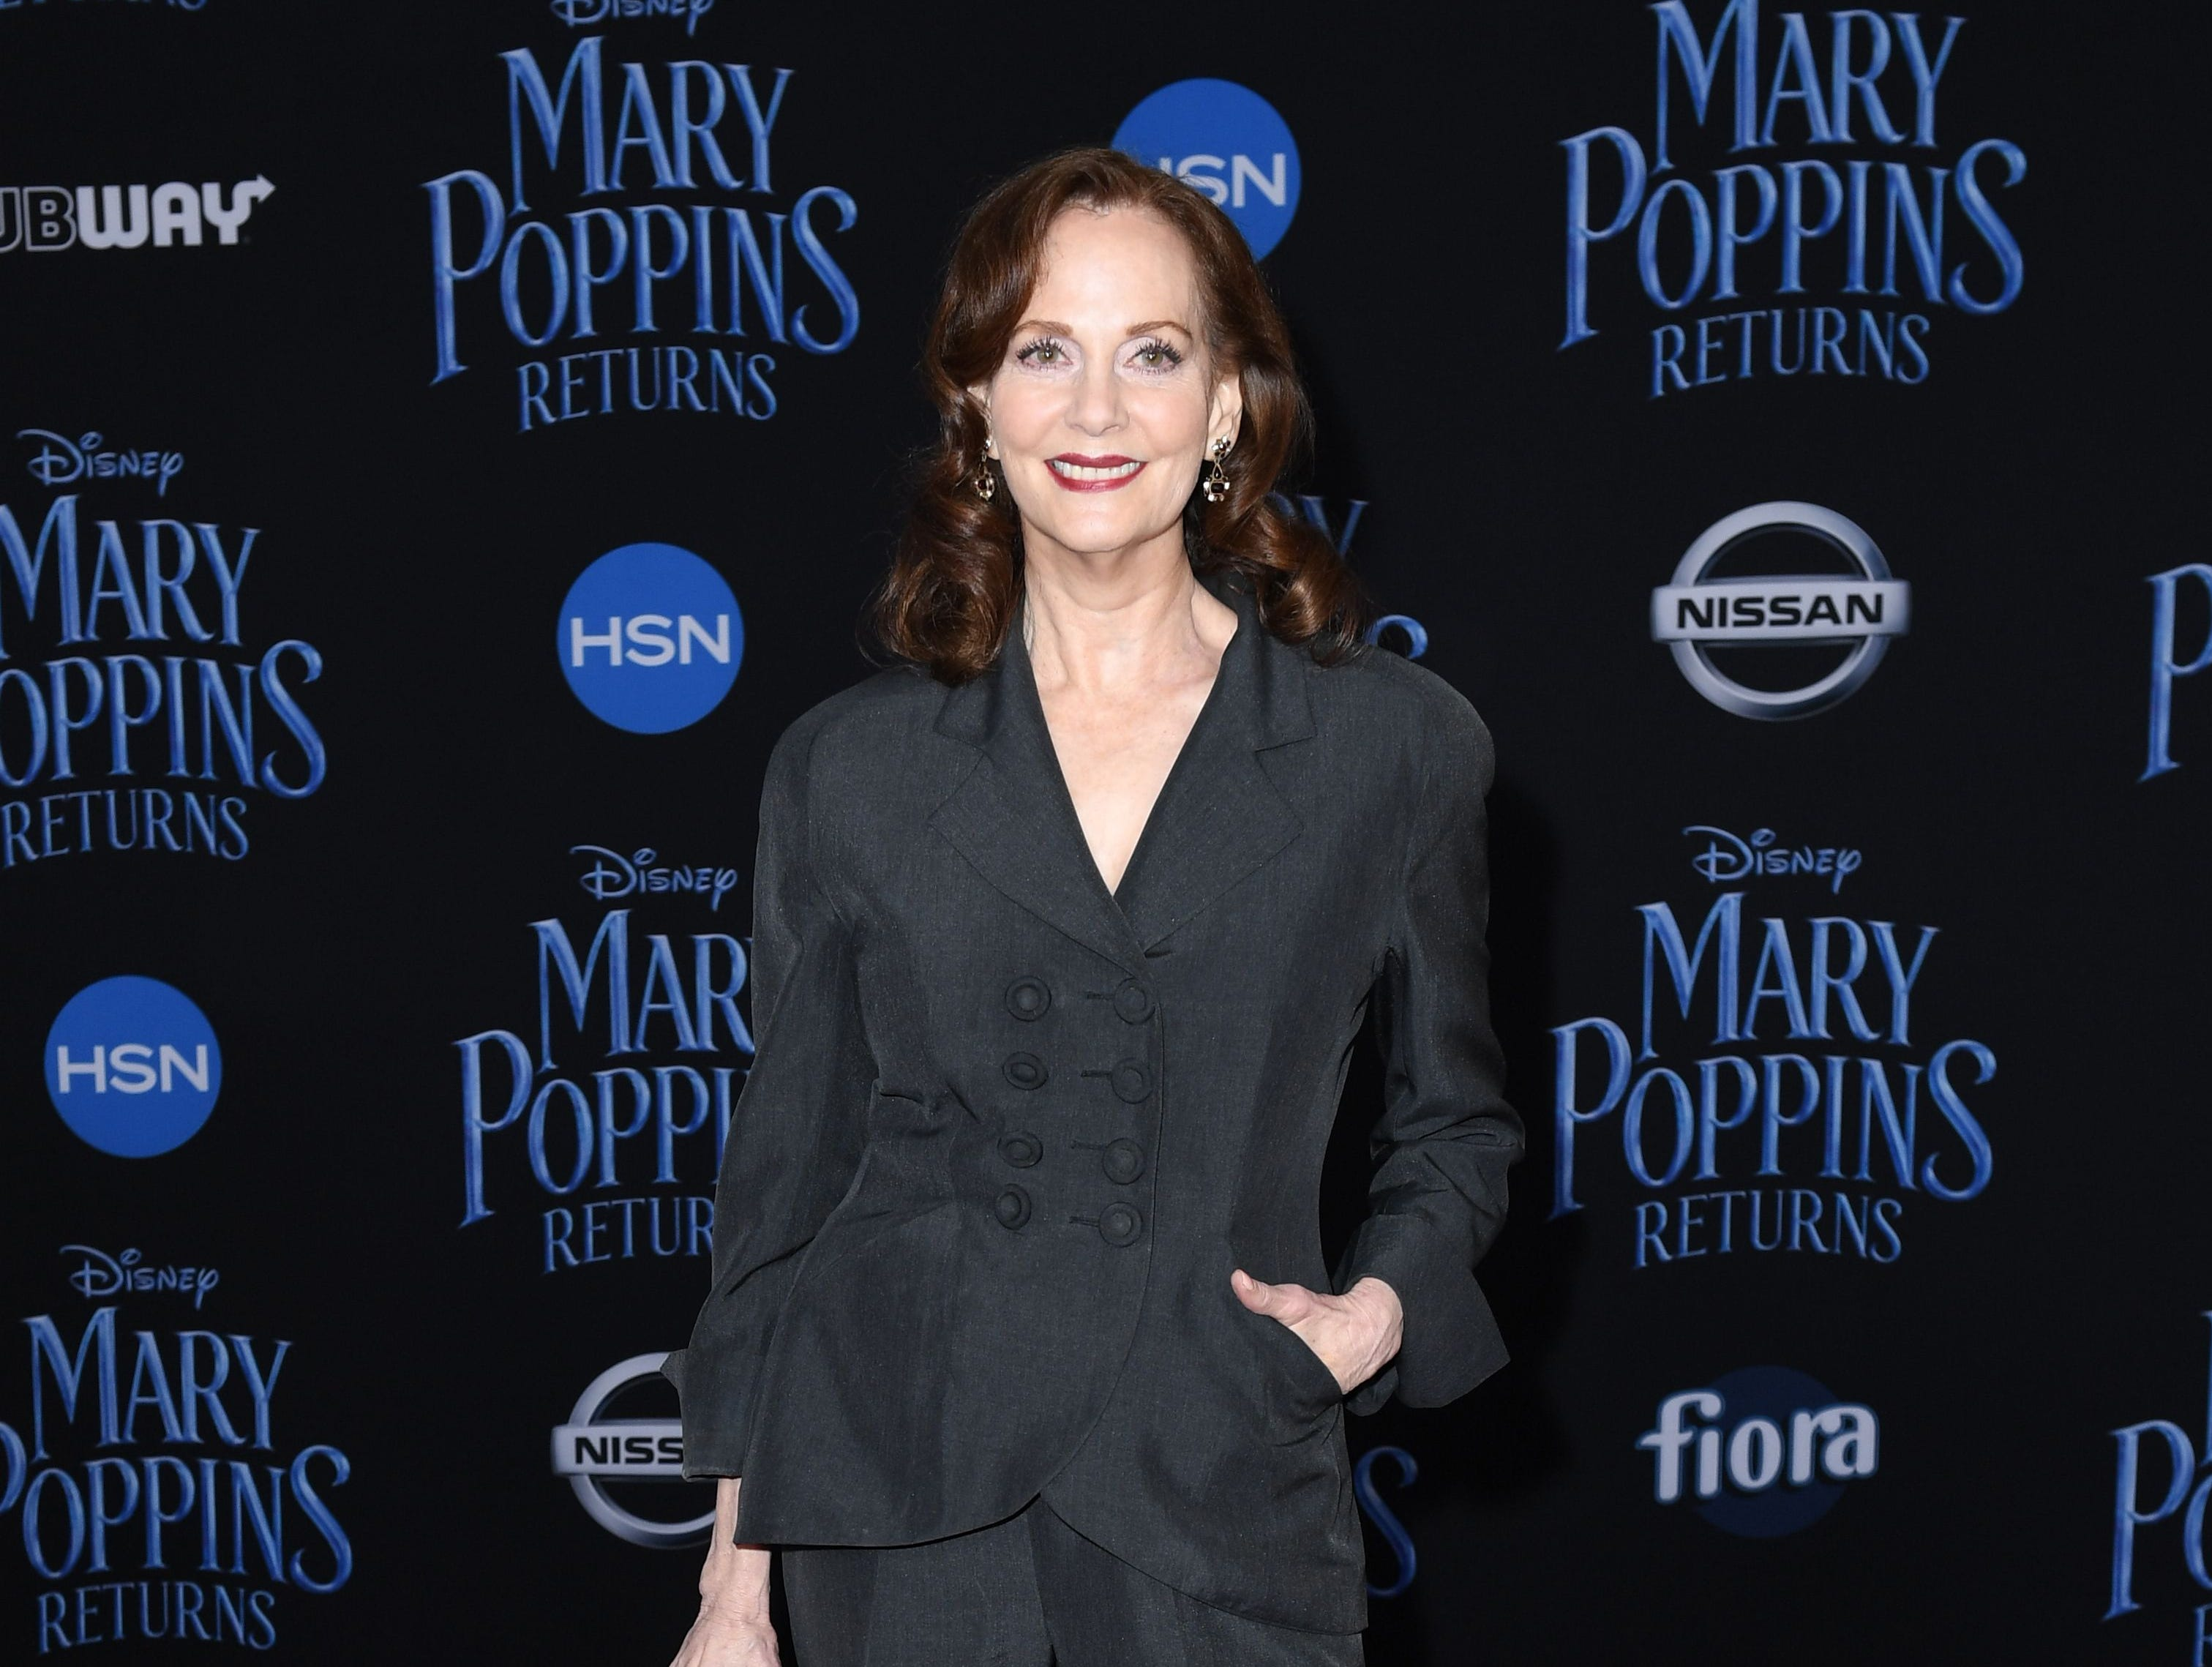 """US actress Lesley Ann Warren arrives for the world premiere of Disney's """"Mary Poppins Returns"""" at the Dolby theatre in Hollywood on November 29, 2018. (Photo by VALERIE MACON / AFP)VALERIE MACON/AFP/Getty Images ORG XMIT: 'Mary Pop ORIG FILE ID: AFP_1B81NJ"""